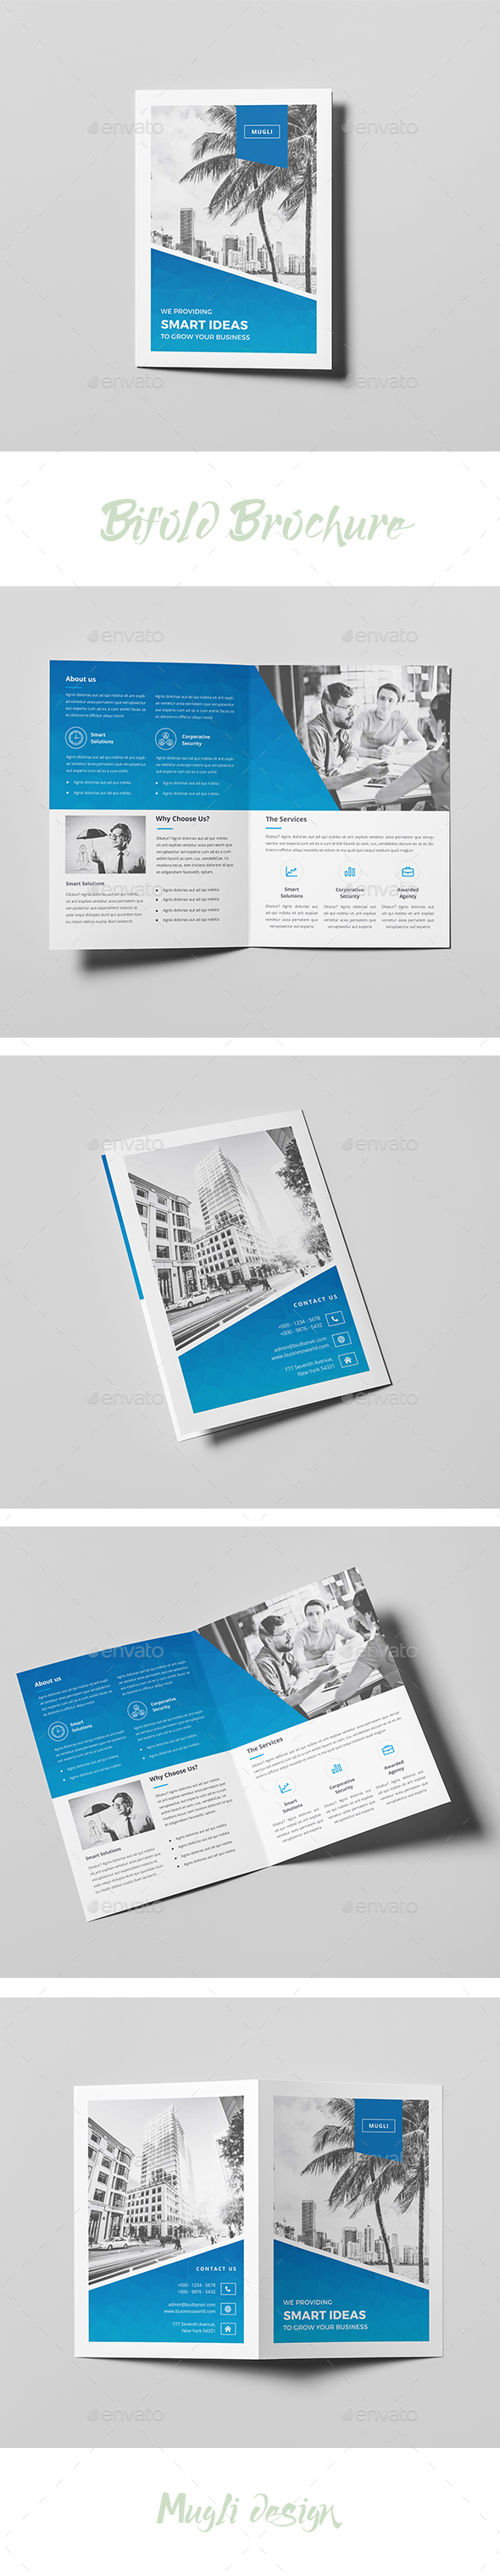 Bifold Brochure - Corporate Brochures